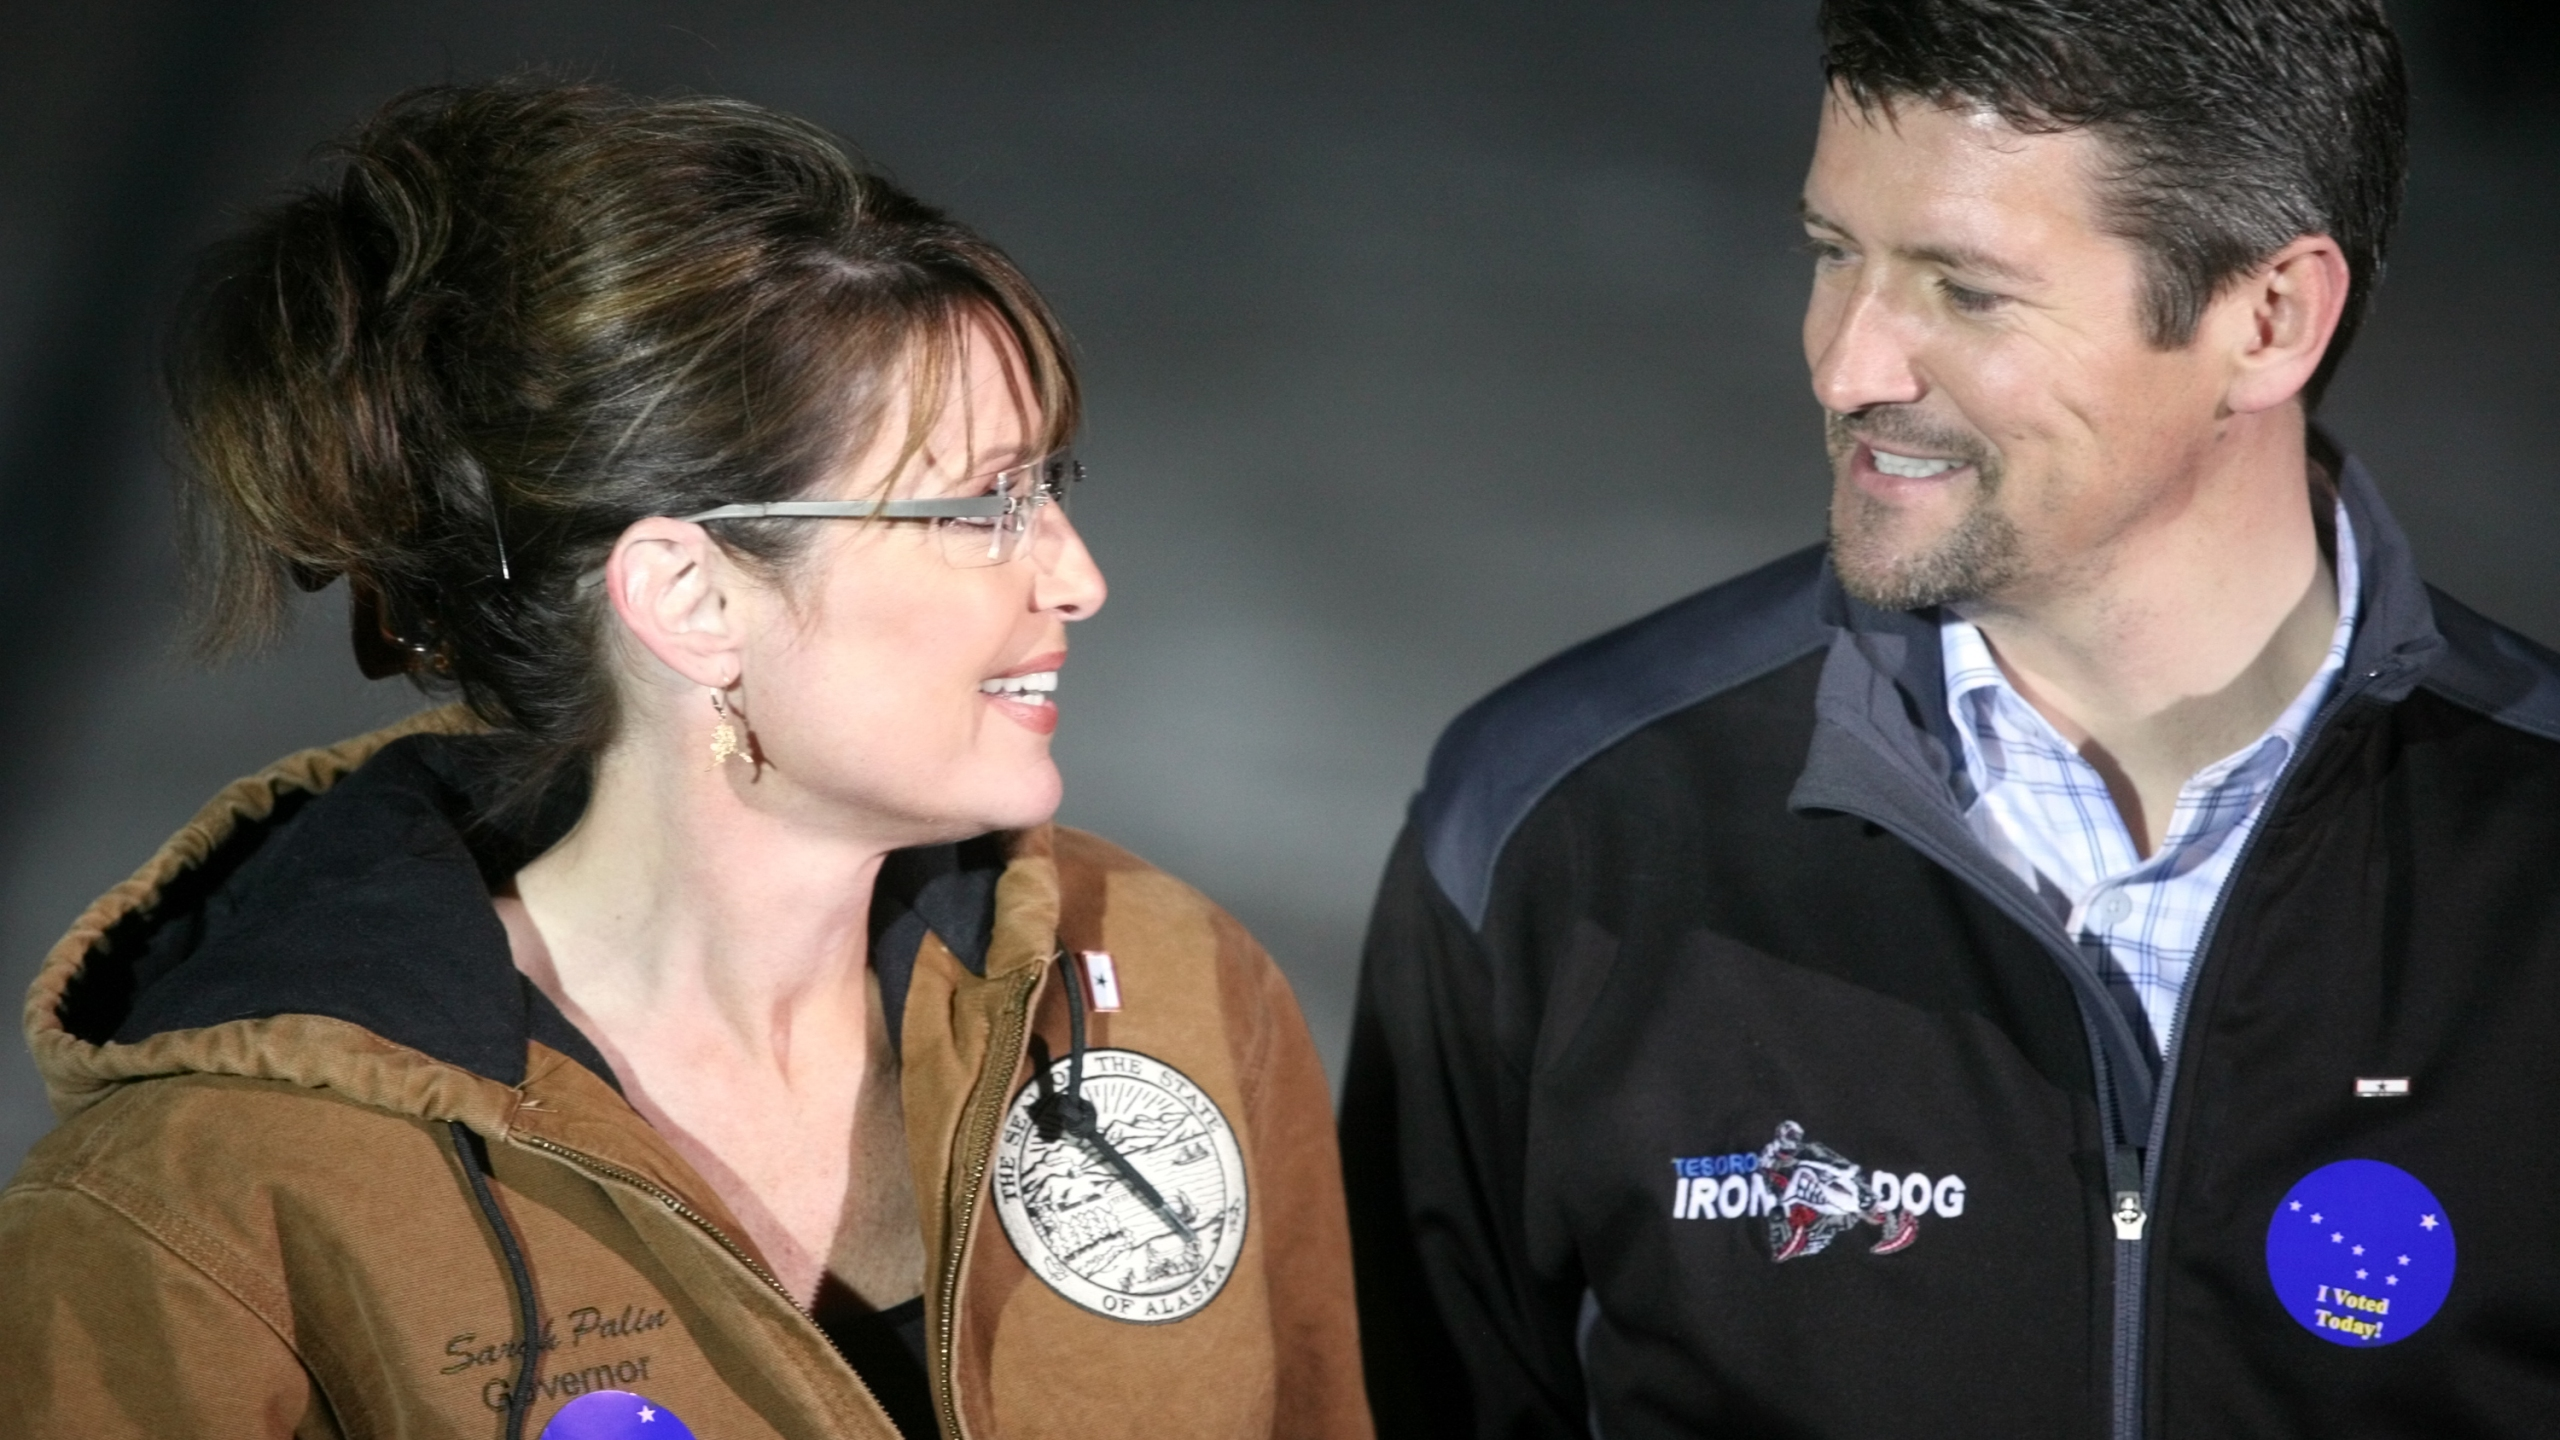 Republican vice-presidential nominee Alaska Gov. Sarah Palin and her husband Todd Palin exchange a glance while speaking with members of the media after casting their votes November 4, 2008 in Wasilla, Alaska. (Credit: Johnny Wagner/Getty Images)